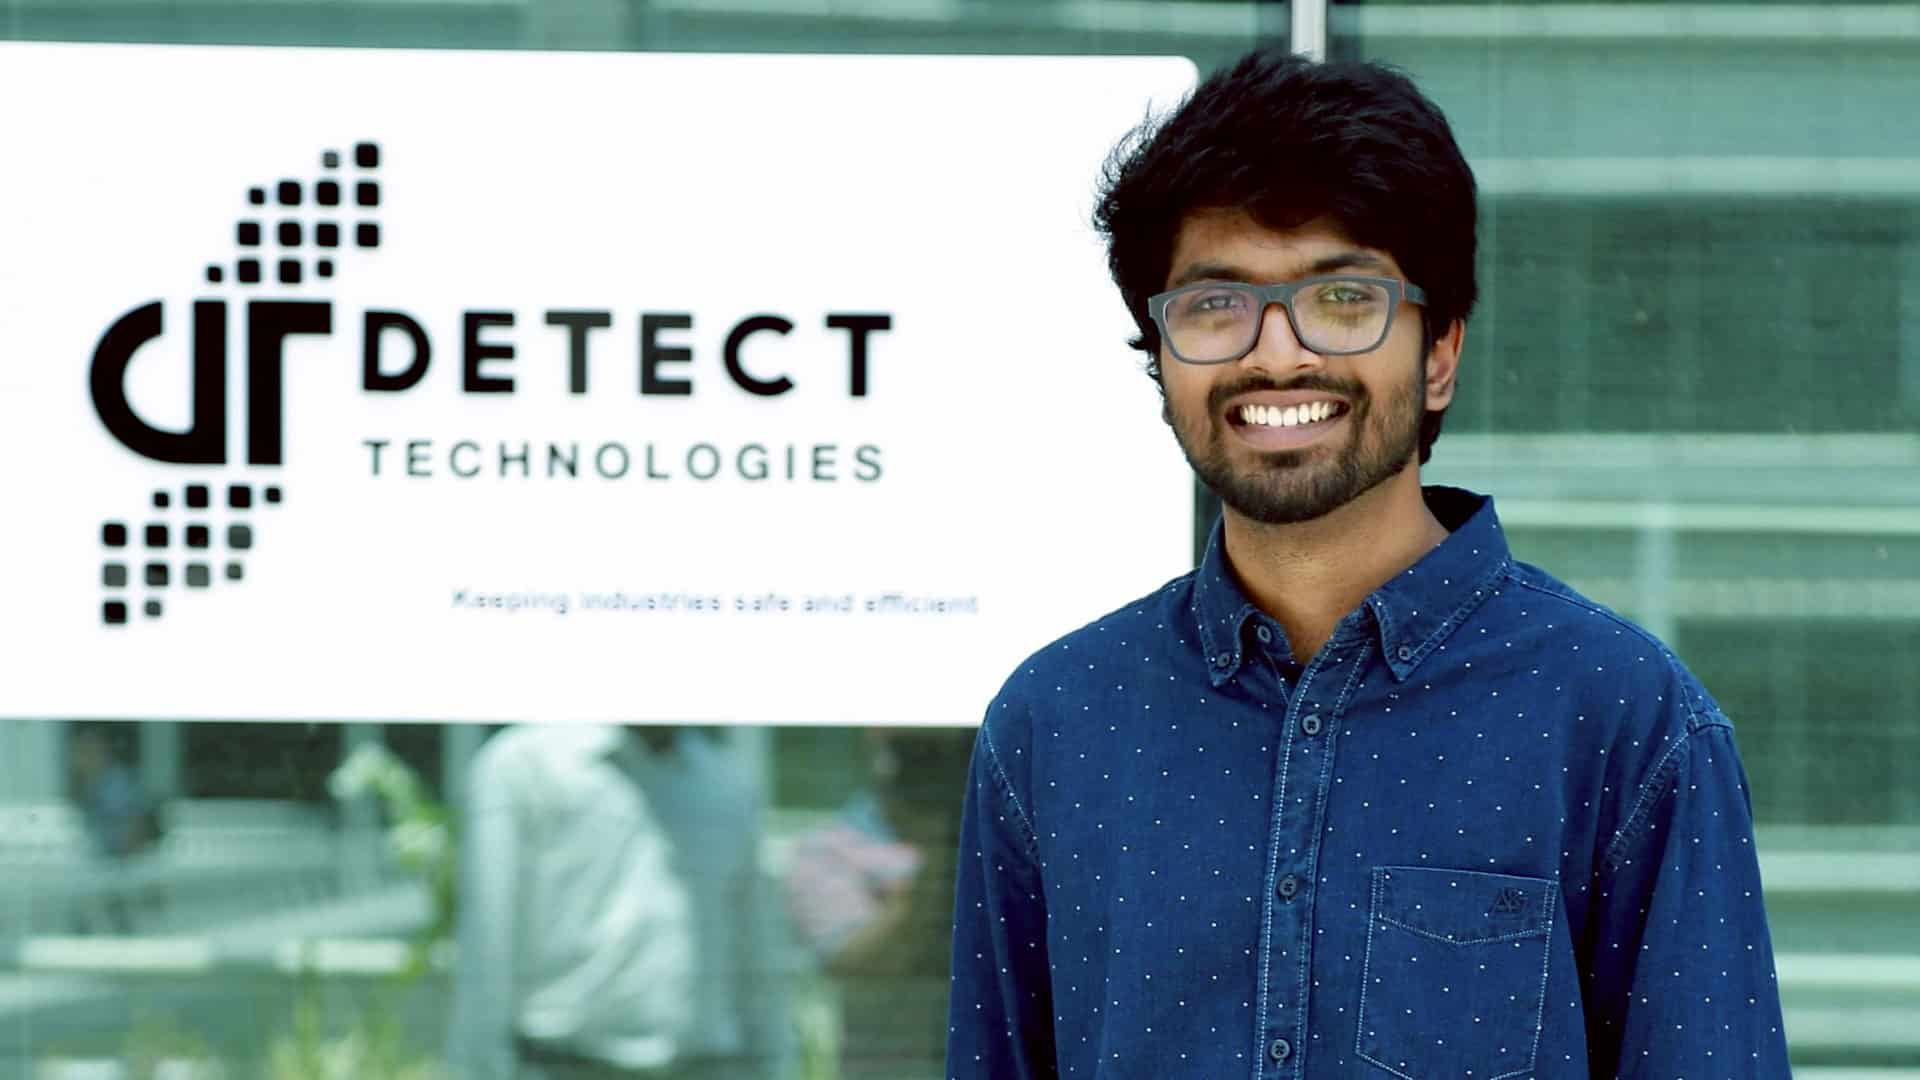 Funding Alert: Detect Technologies secures $12mn from Accel, Elevation Capital, others